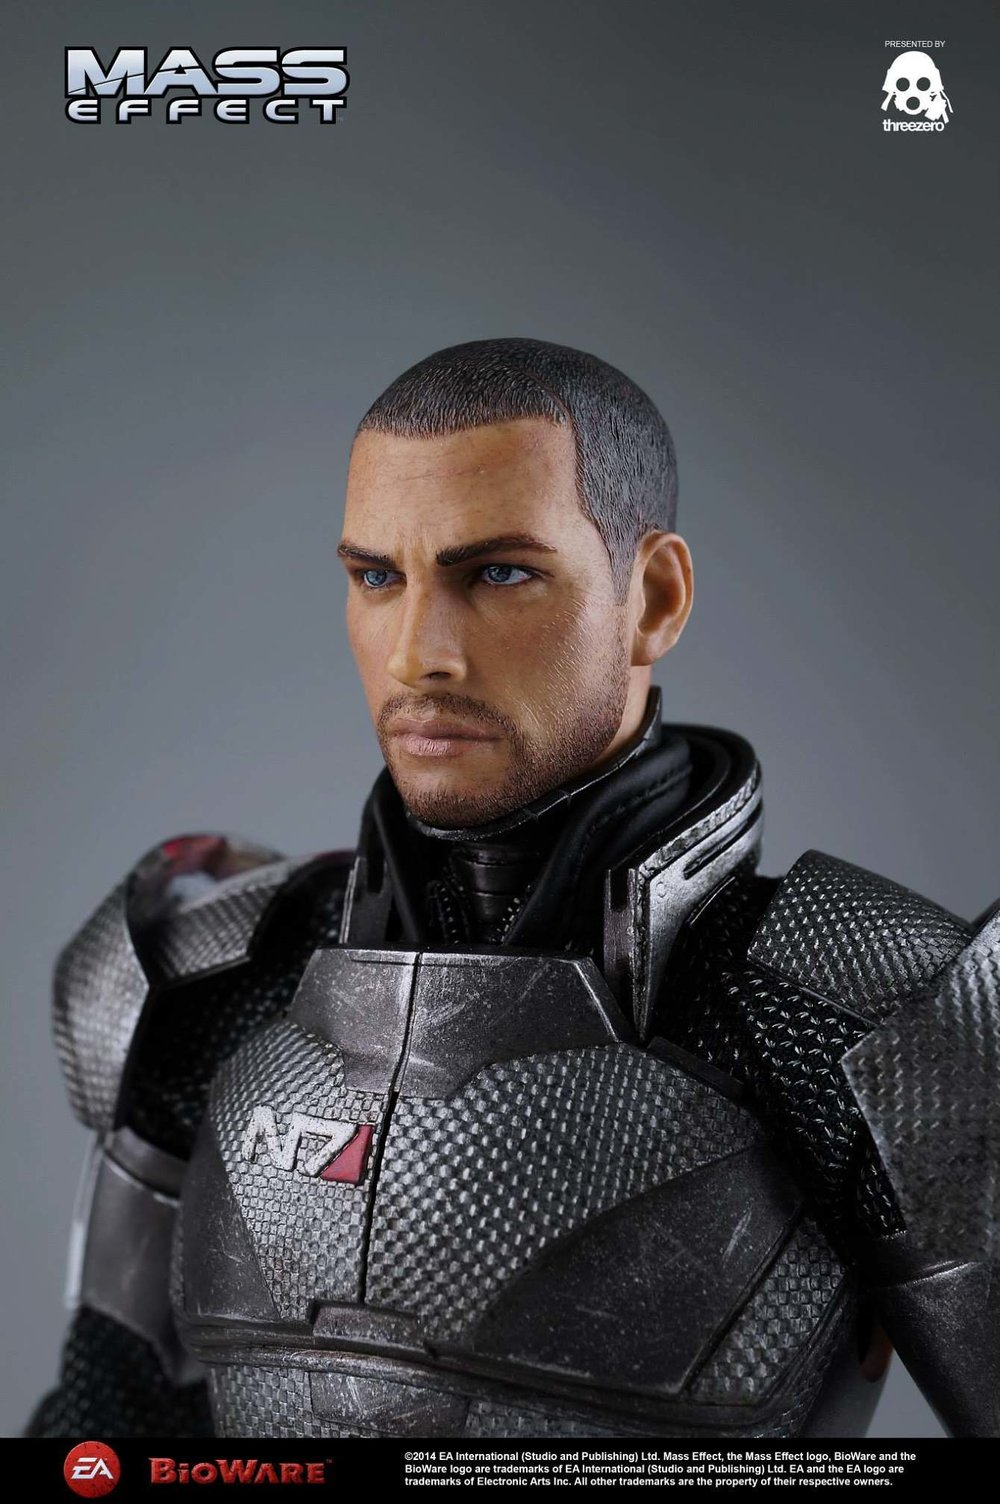 ThreeZero-Bioware-video-game-Shepard-1614347_997493173609844_7642313510141958022_o_1340_c.jpg